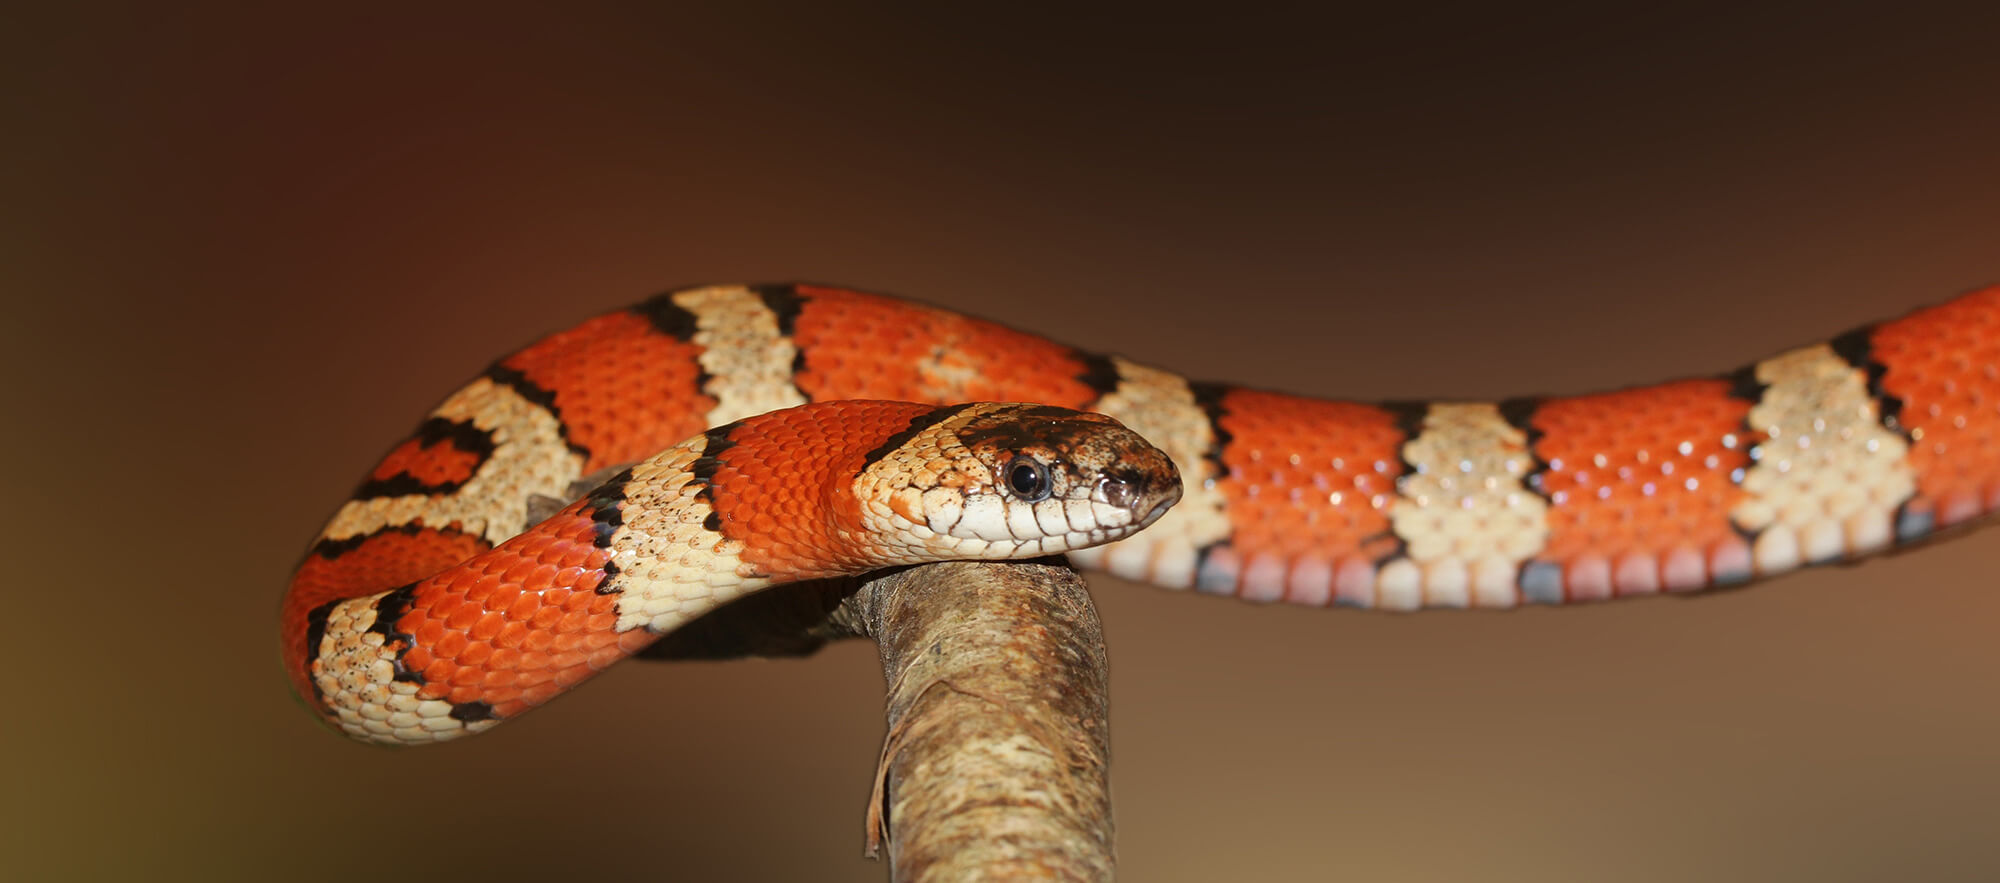 Costa Rican King Snake on a Branch